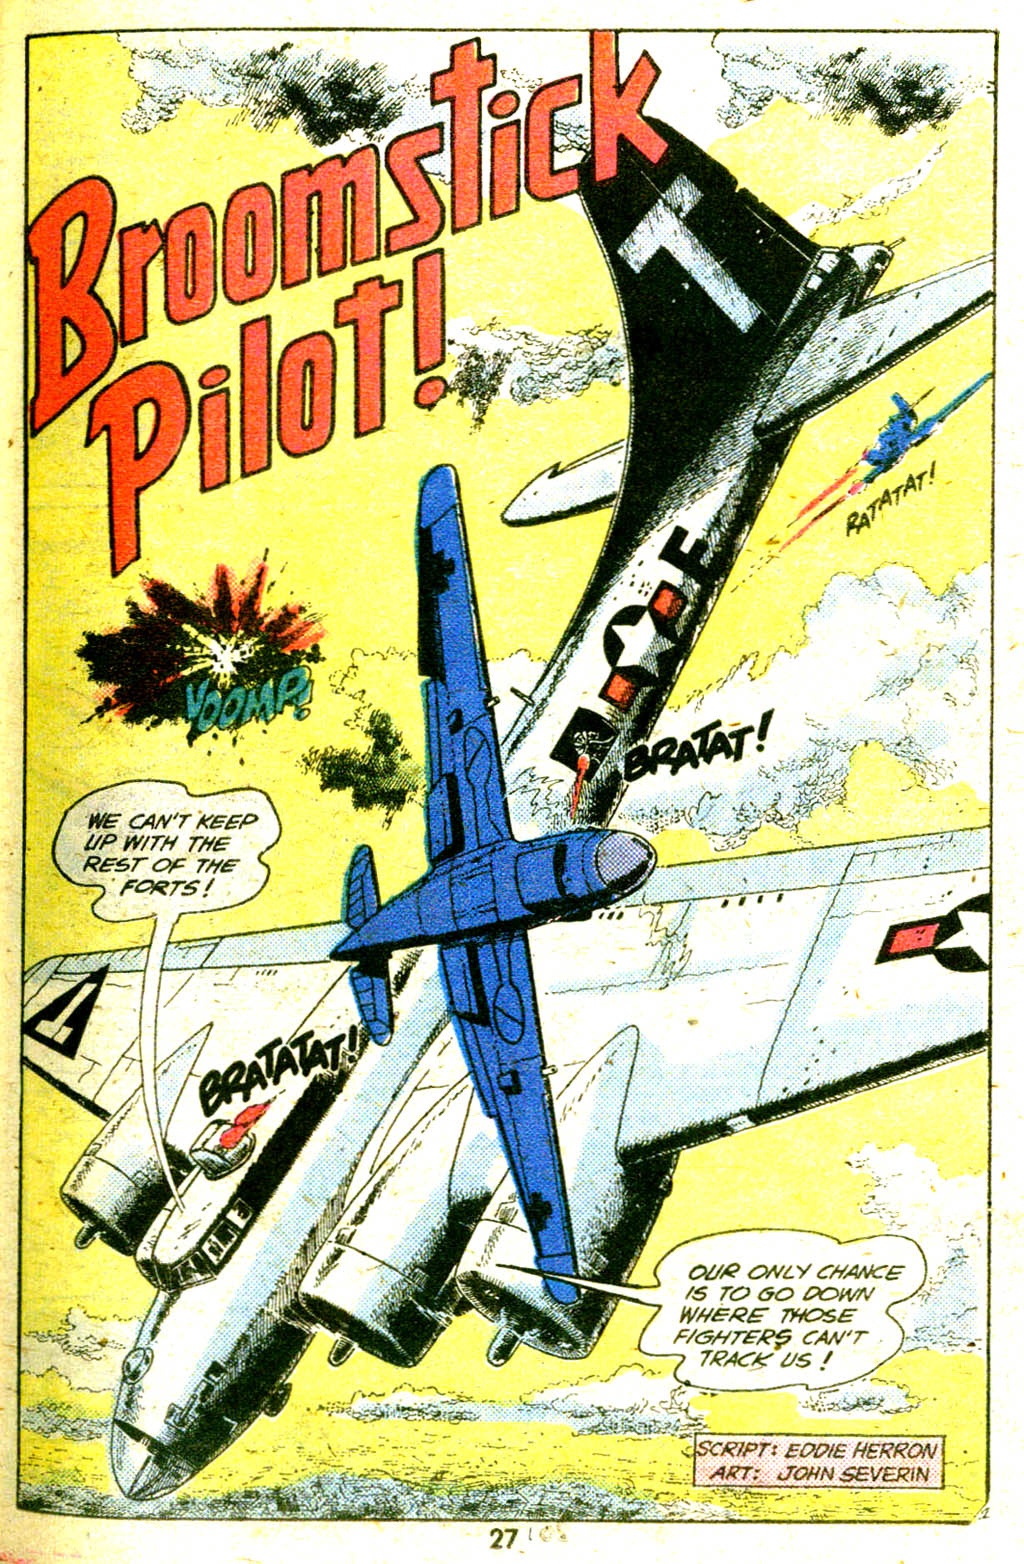 """Broomstick Pilot"" by France E. Herron and John Severin"